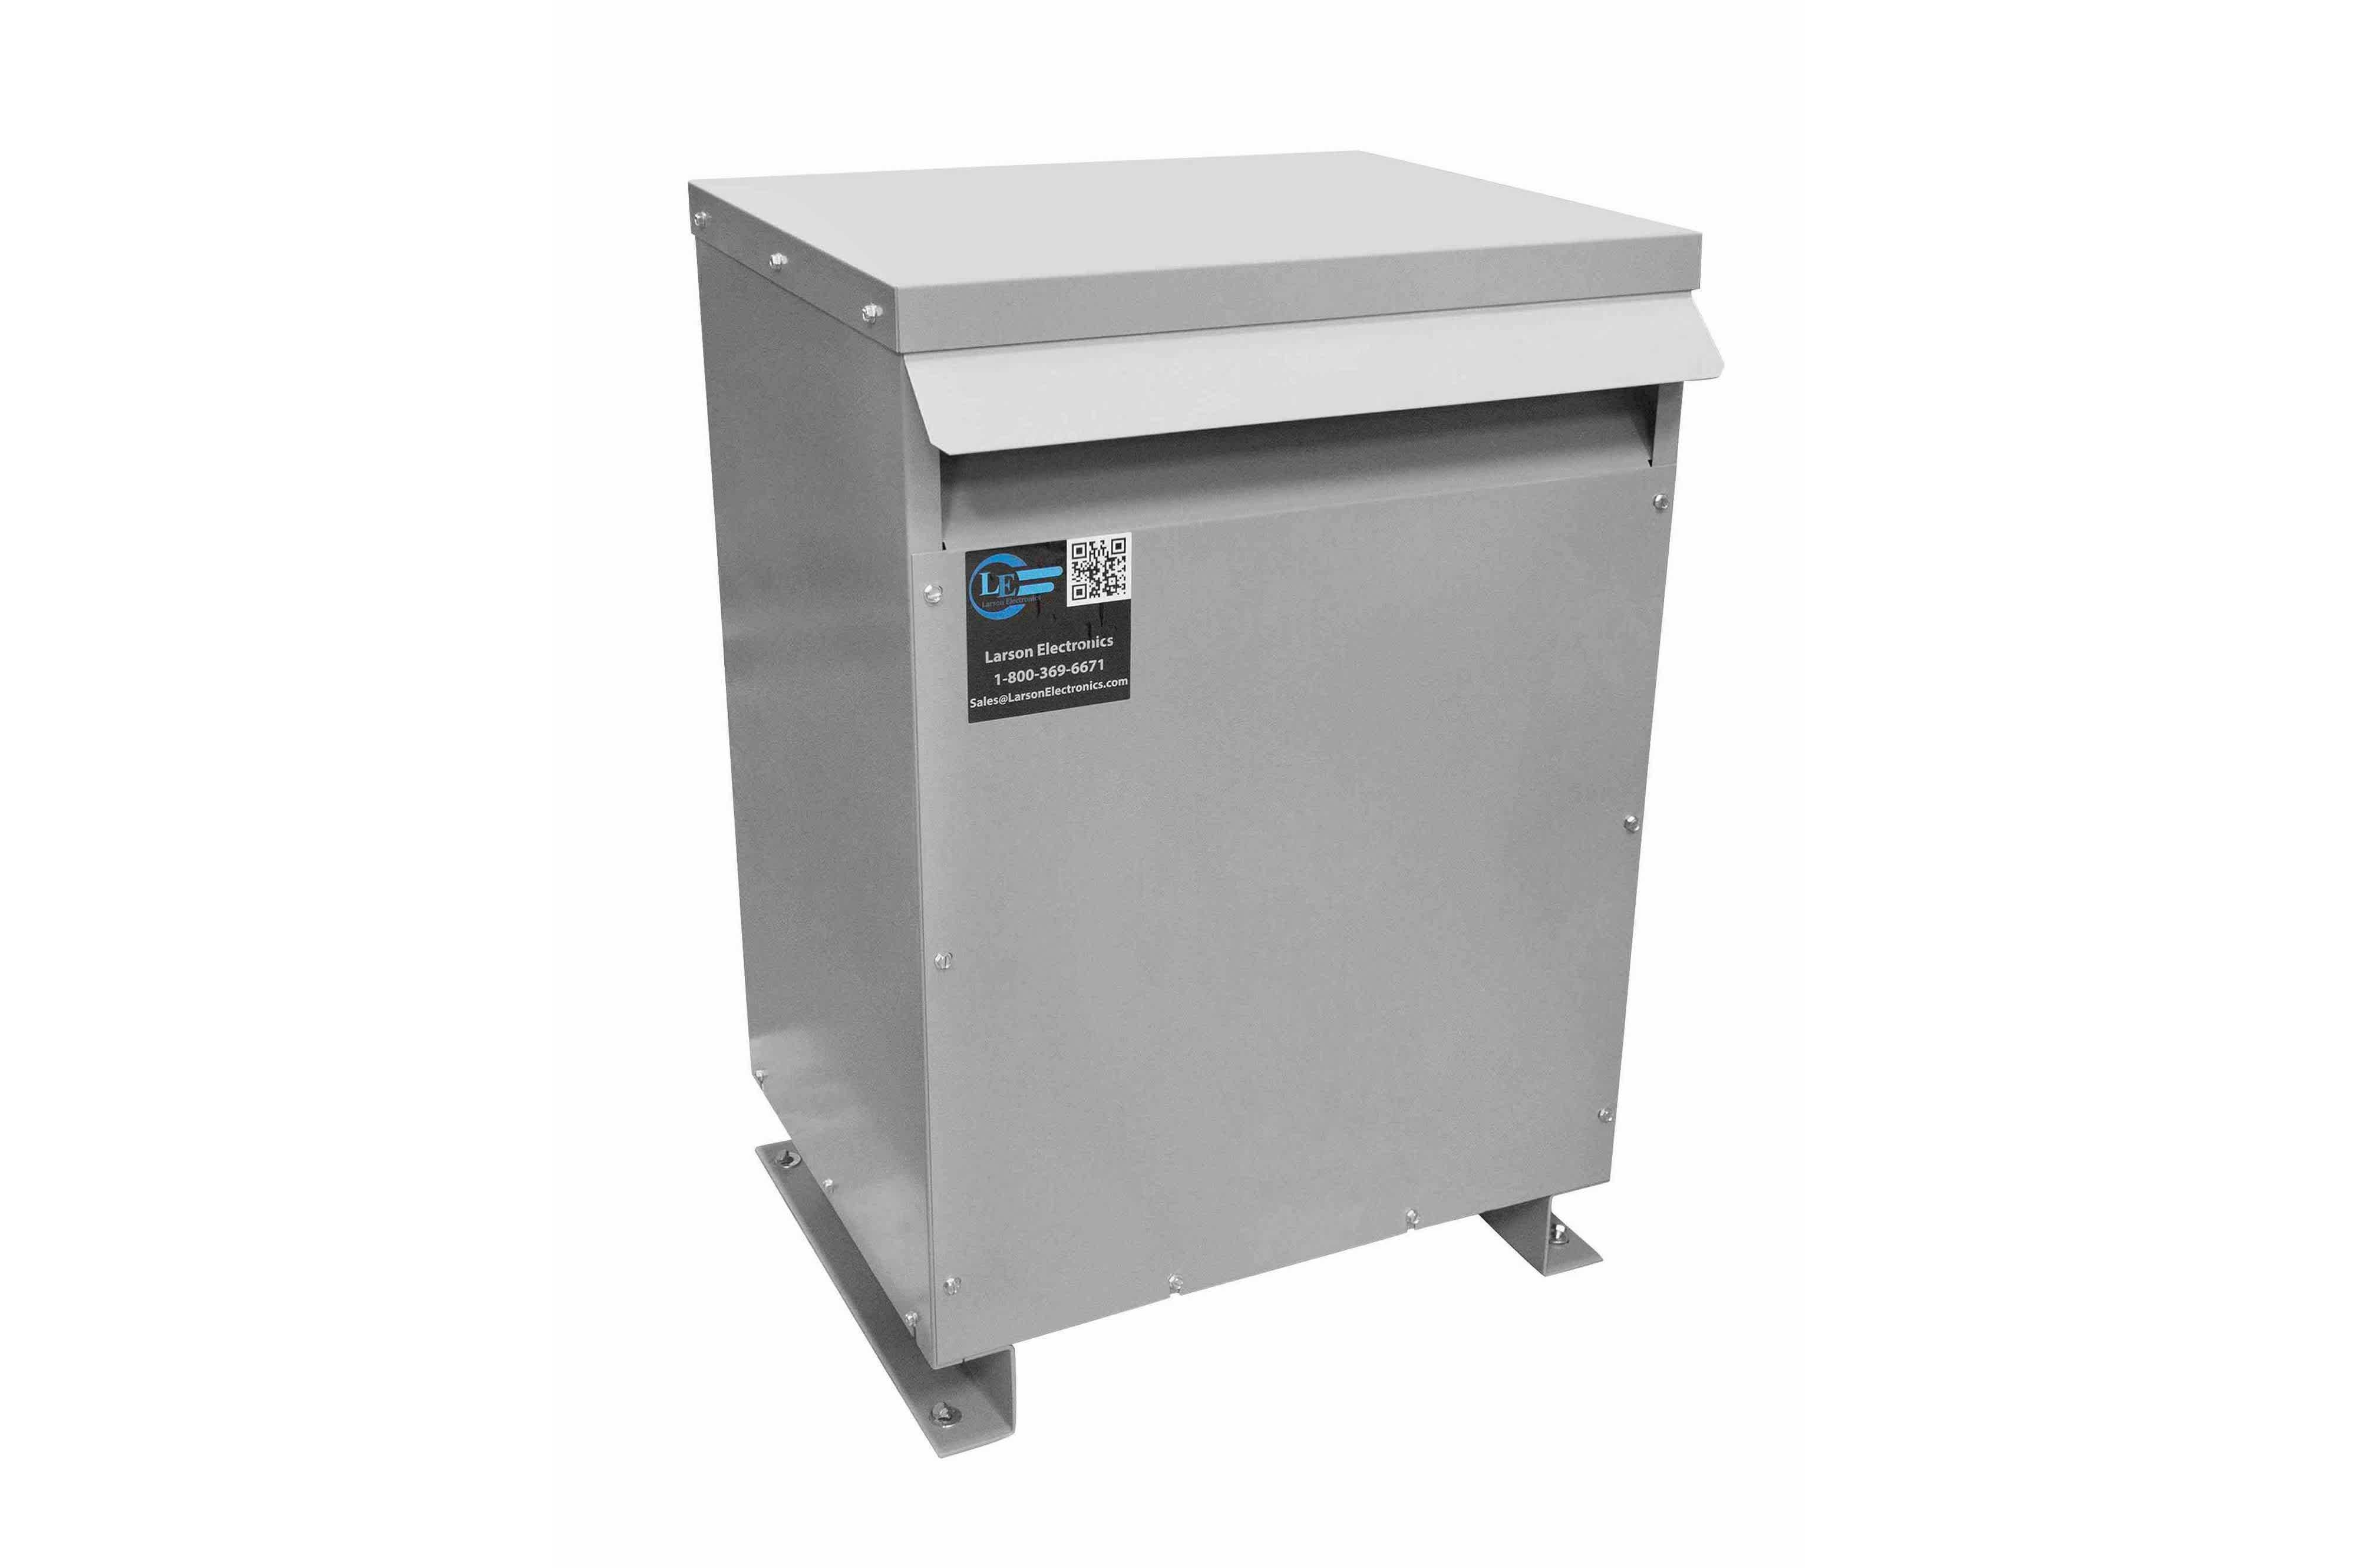 14 kVA 3PH Isolation Transformer, 400V Wye Primary, 208Y/120 Wye-N Secondary, N3R, Ventilated, 60 Hz